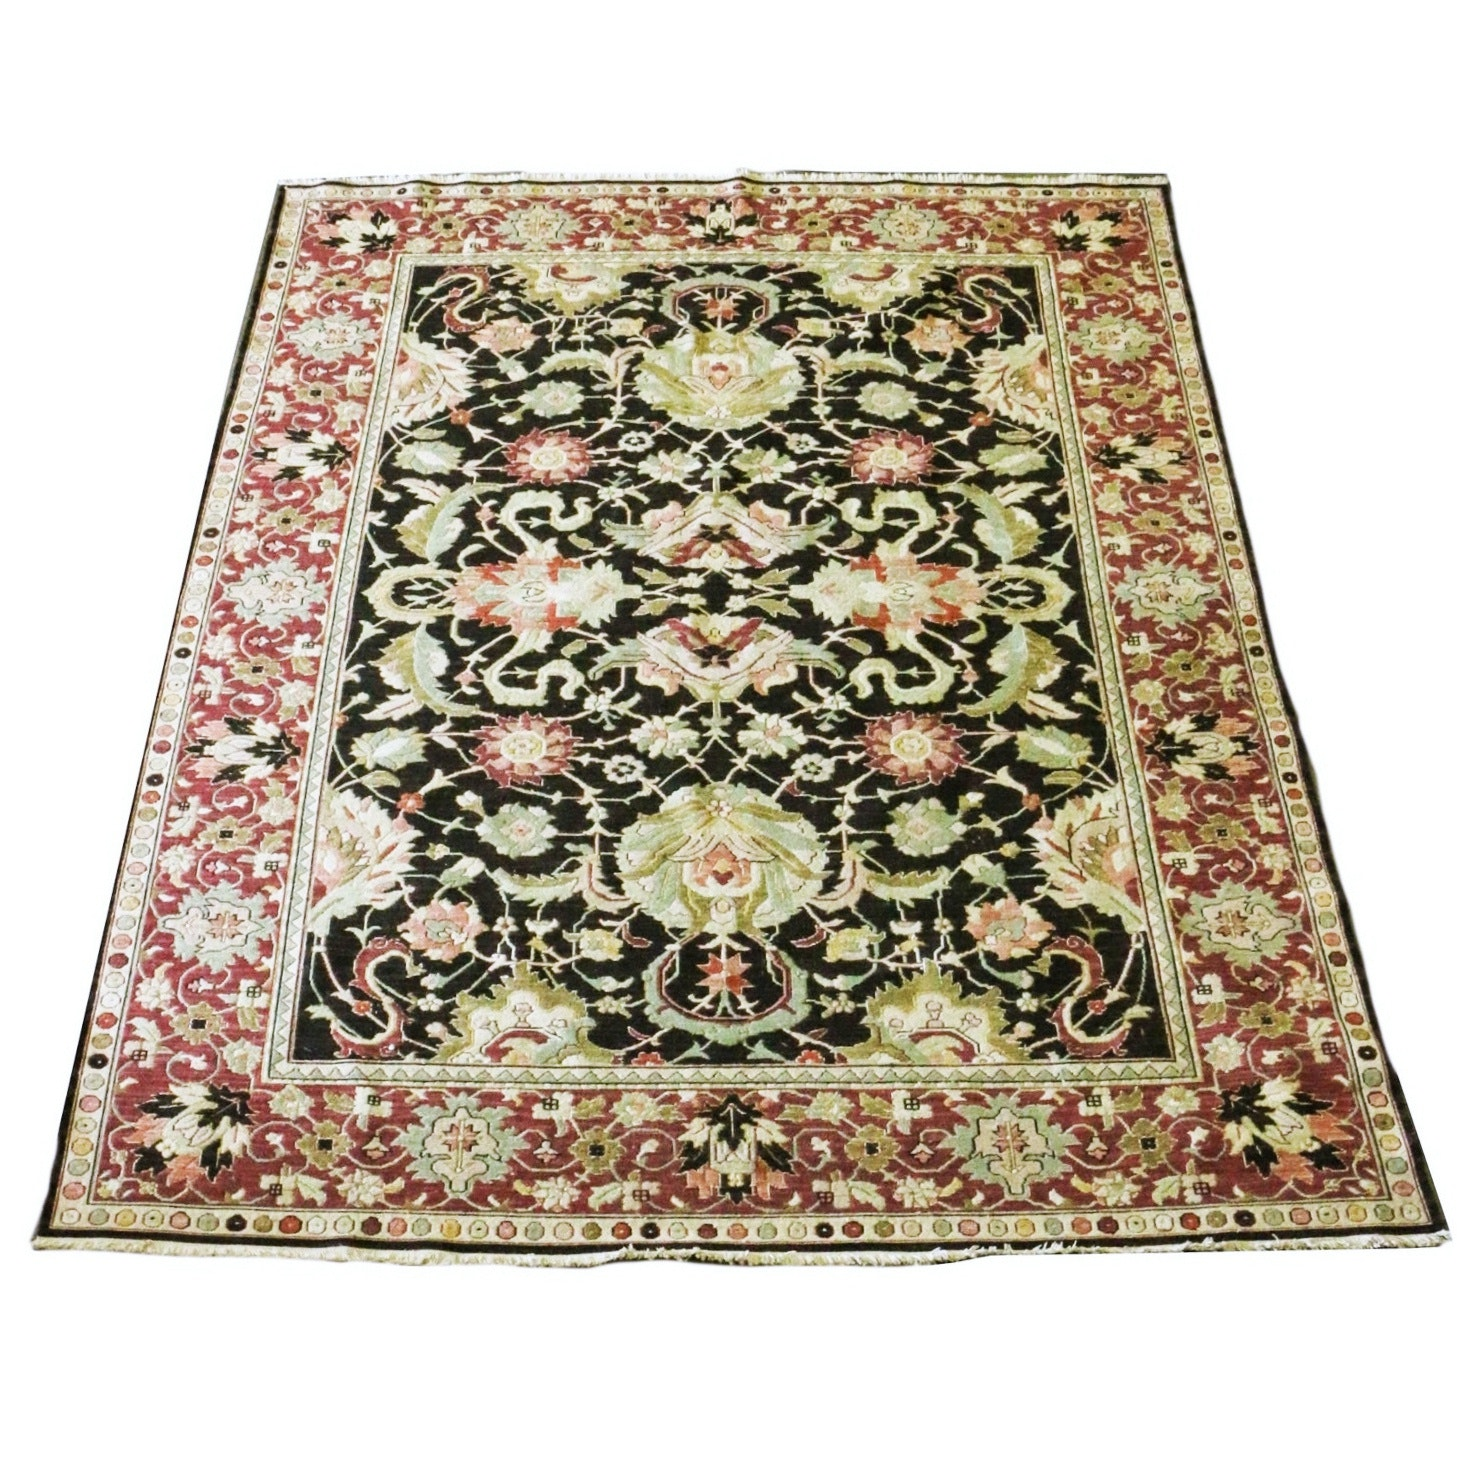 Hand Woven All Wool Persian Style Rug, Made in India